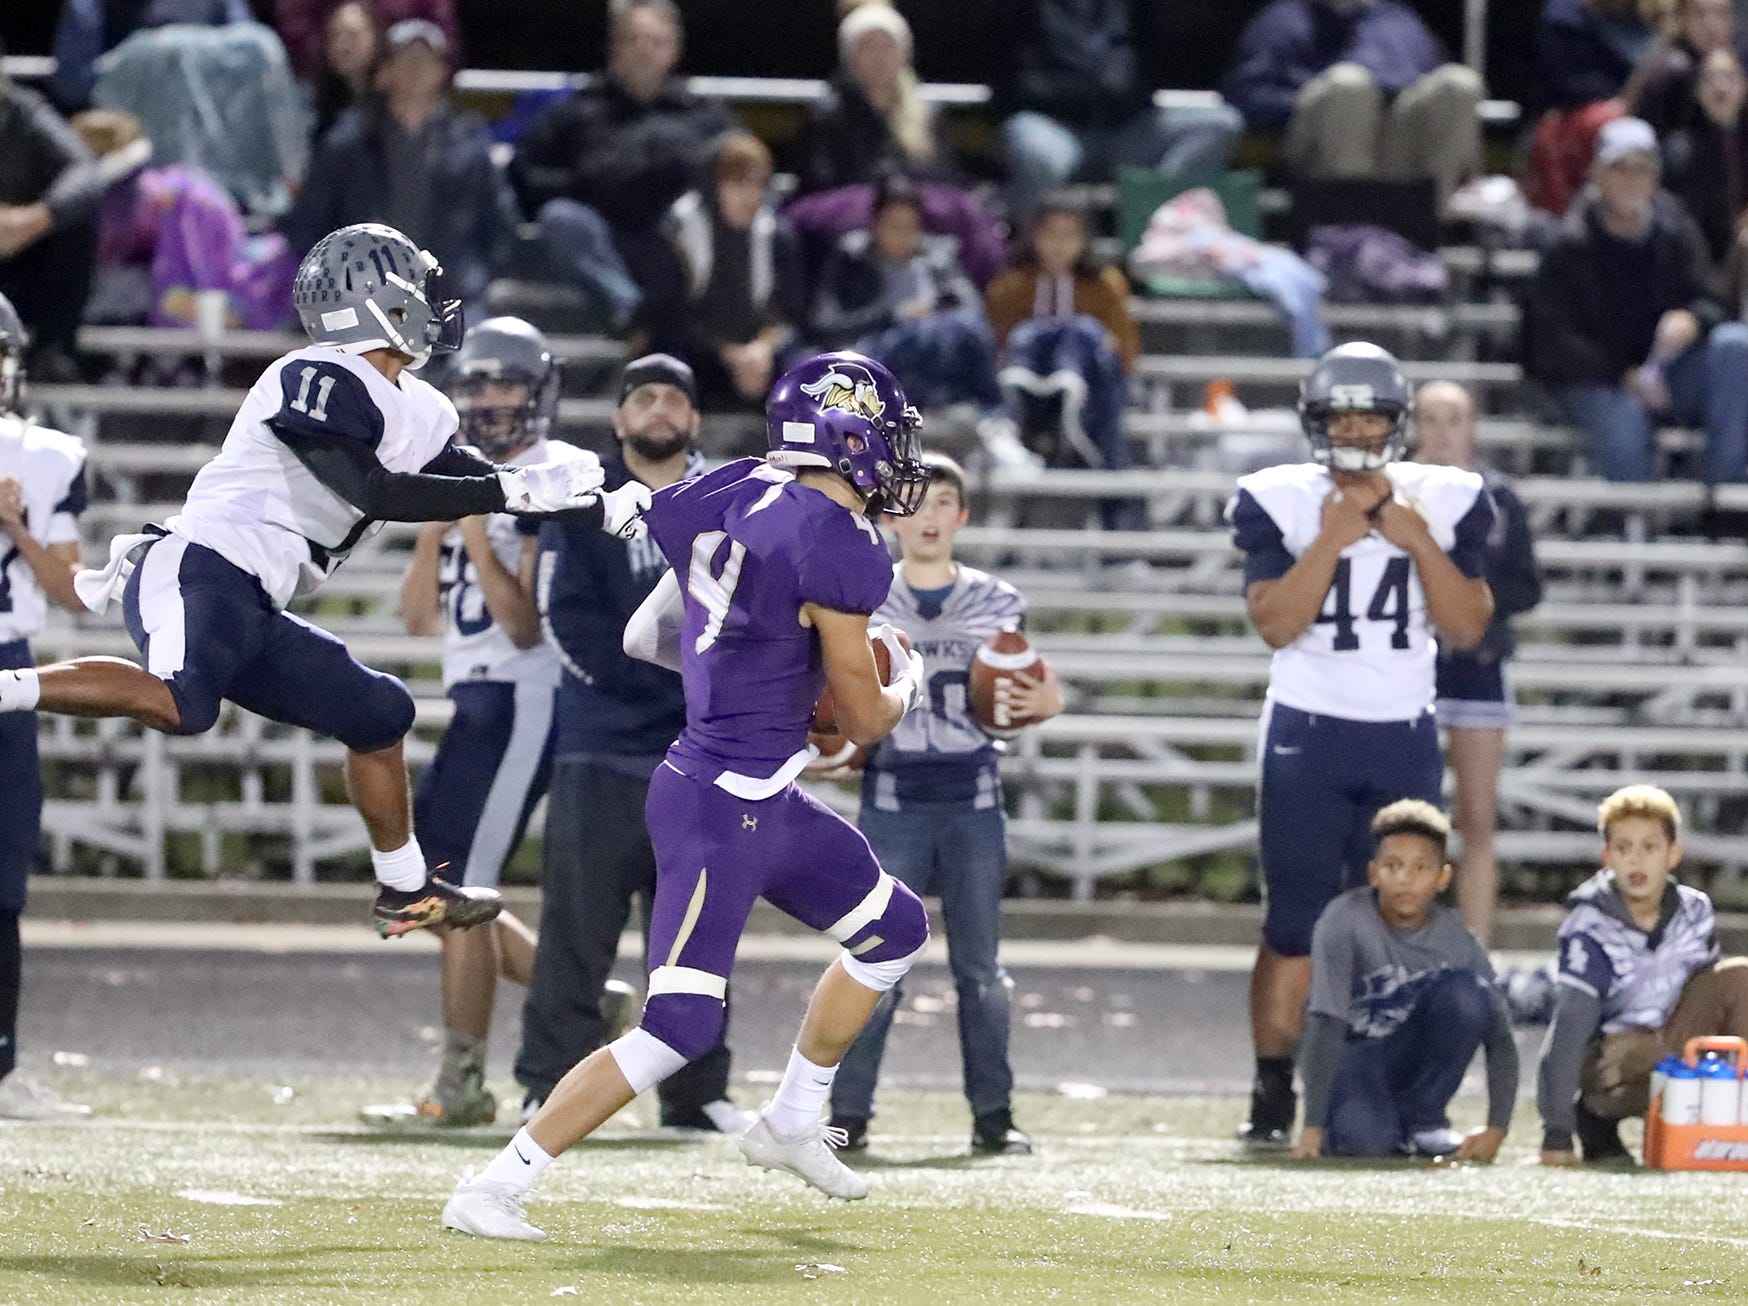 The North Kitsap Vikings defeated River Ridge in a West Central District playoff game at North Kitsap on Friday, November 2, 2018. North's Blake Wetzsteon intercepts a pass.